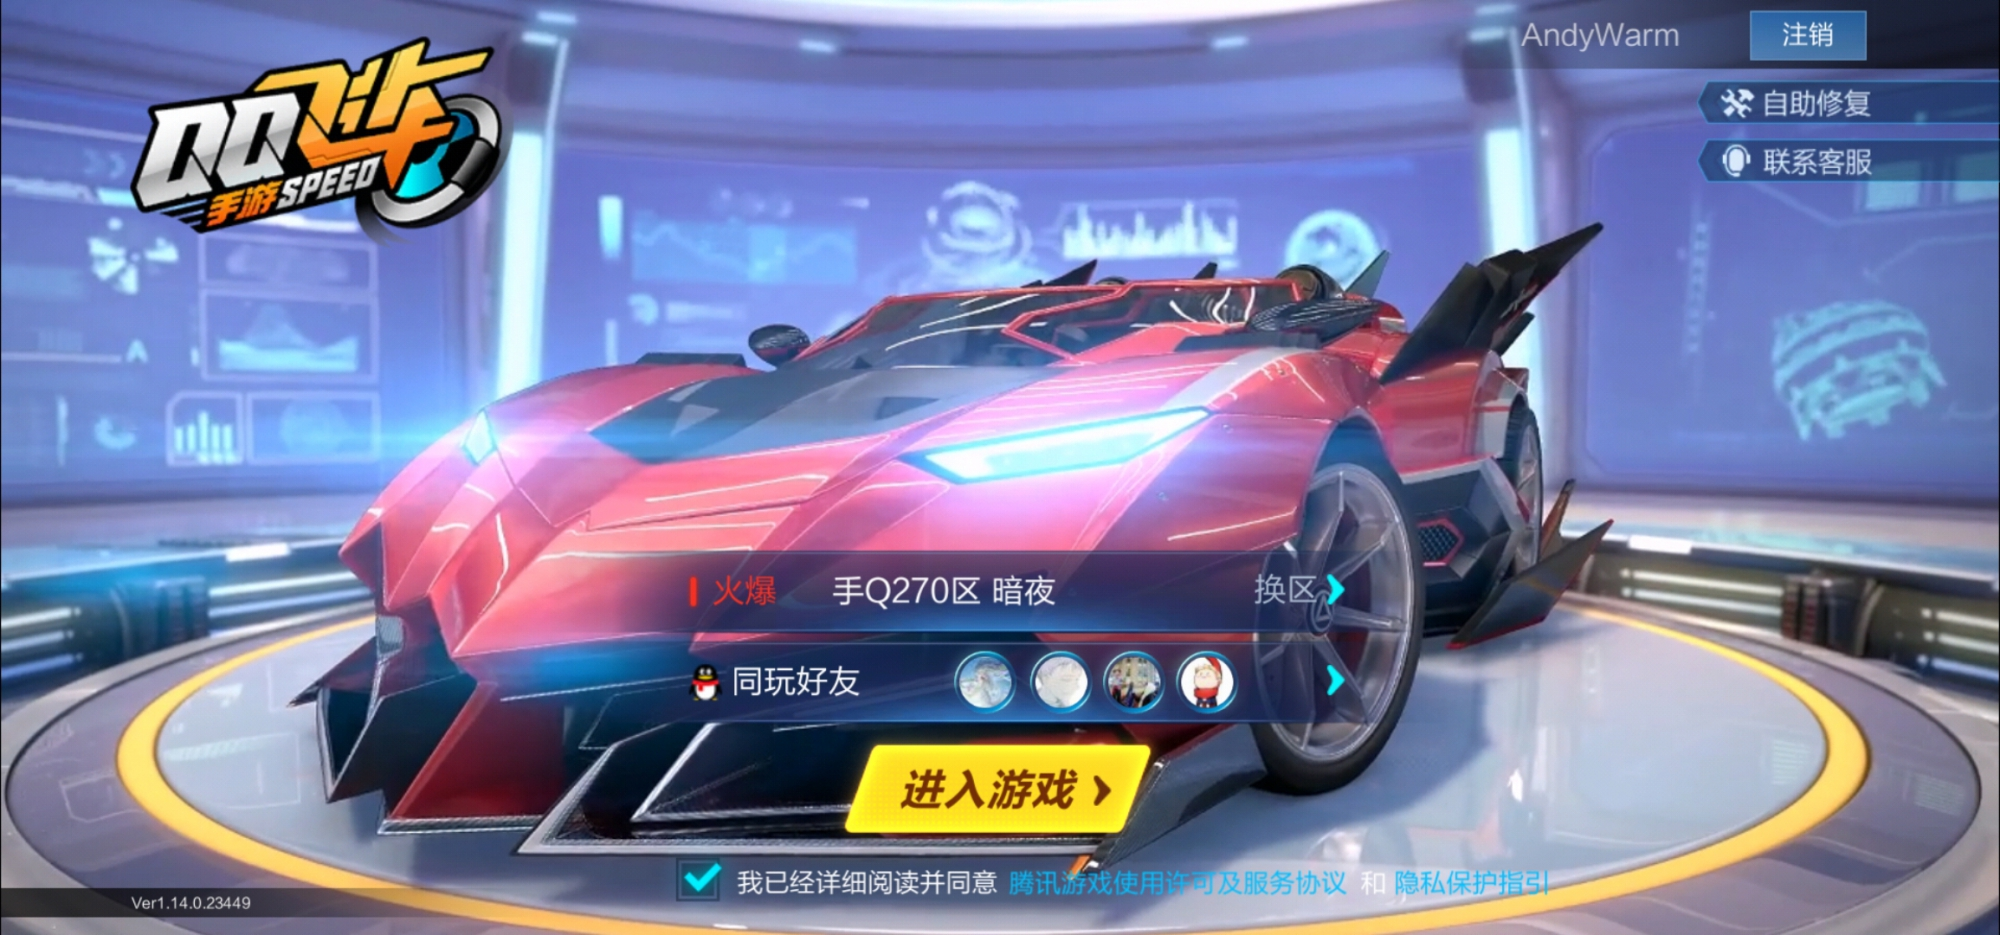 Screenshot_20190729_155352_com.tencent.tmgp.speed.jpg